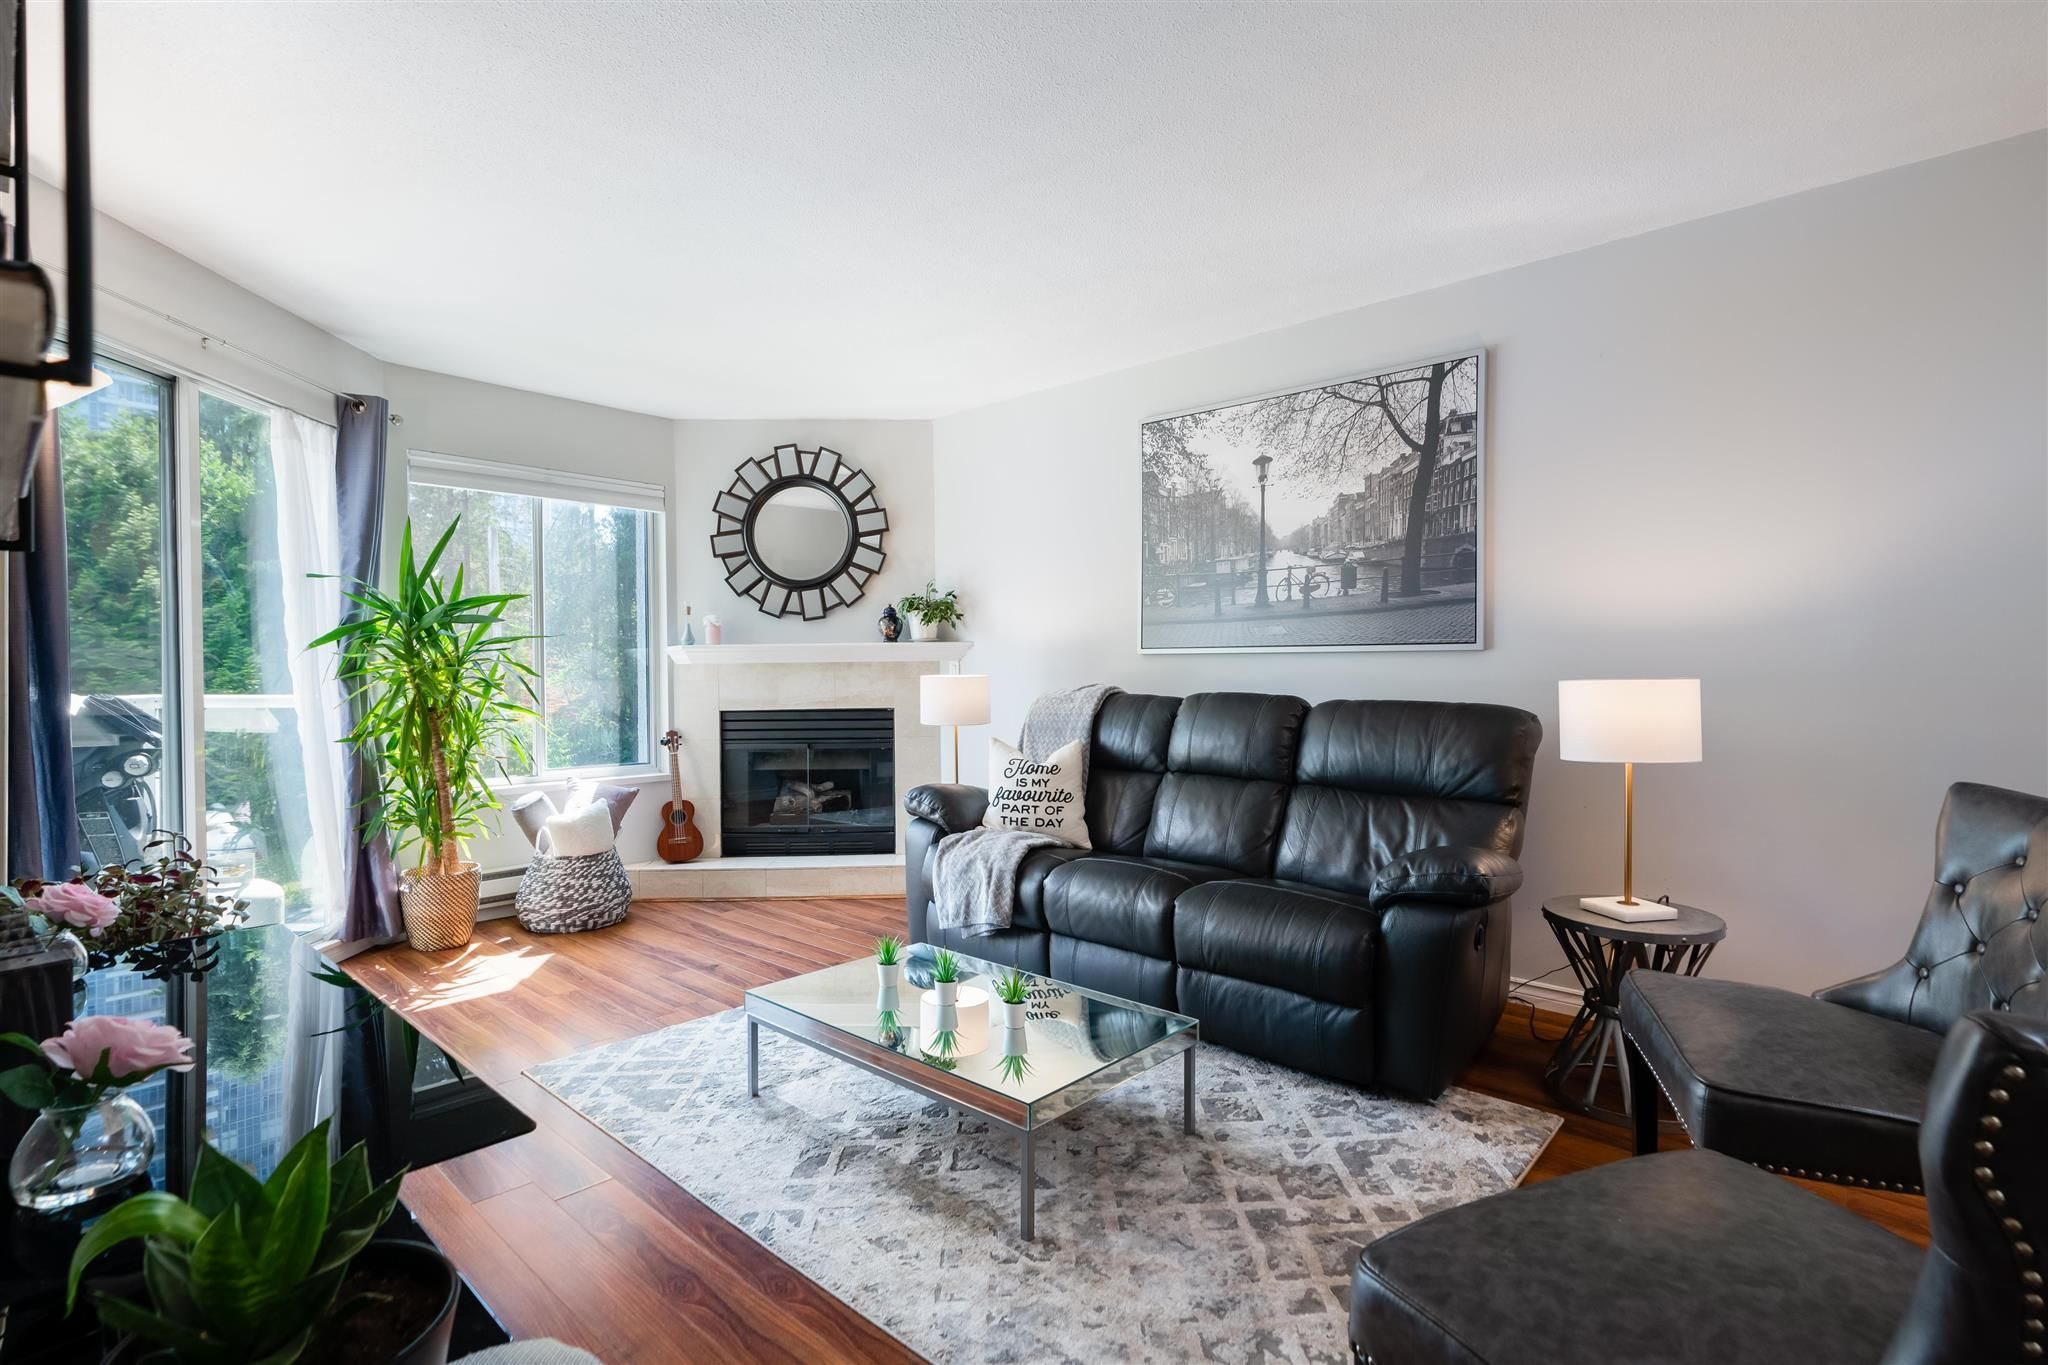 Main Photo: 210 1167 PIPELINE Road in Coquitlam: New Horizons Condo for sale : MLS®# R2601202